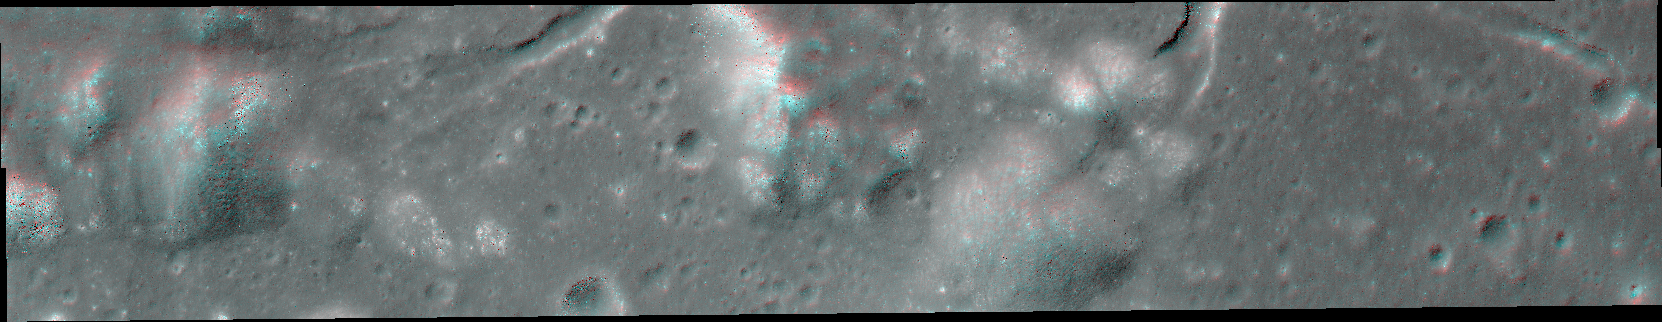 Red-blue 3D anaglyph of rough lunar terrain seen from above